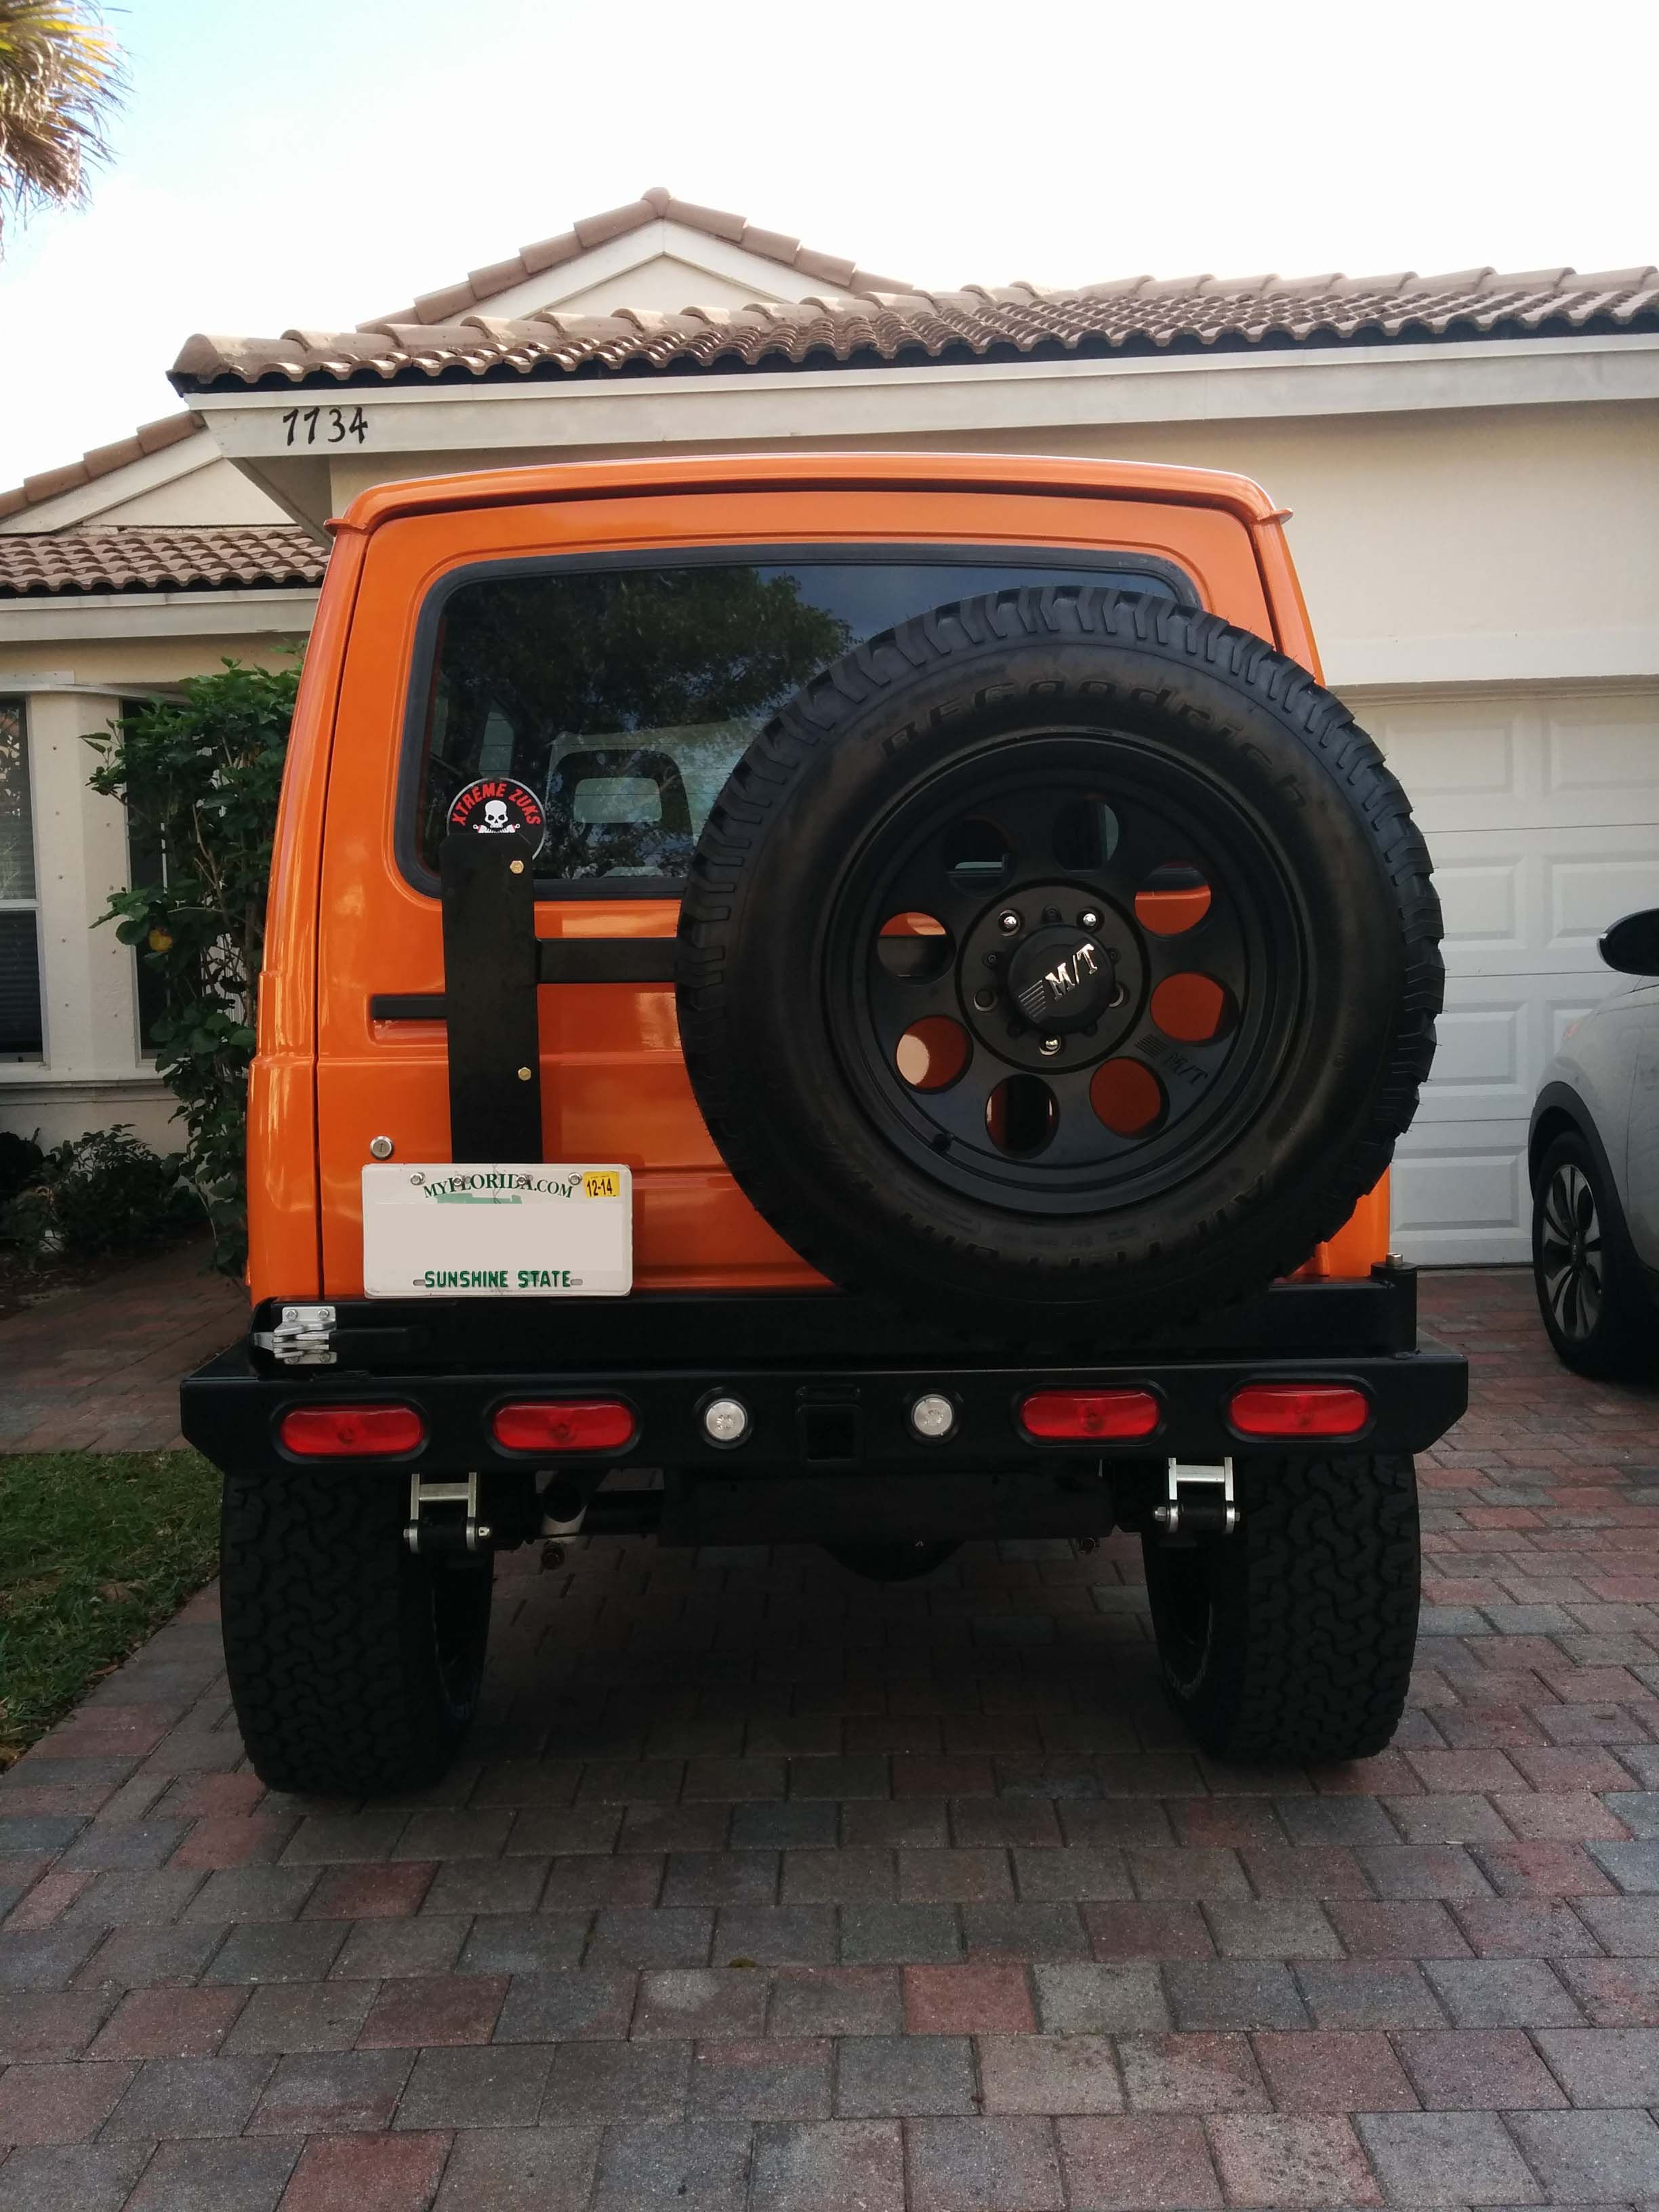 hight resolution of orange suzuki samuria rear view suzuki samurai pinterest rear view